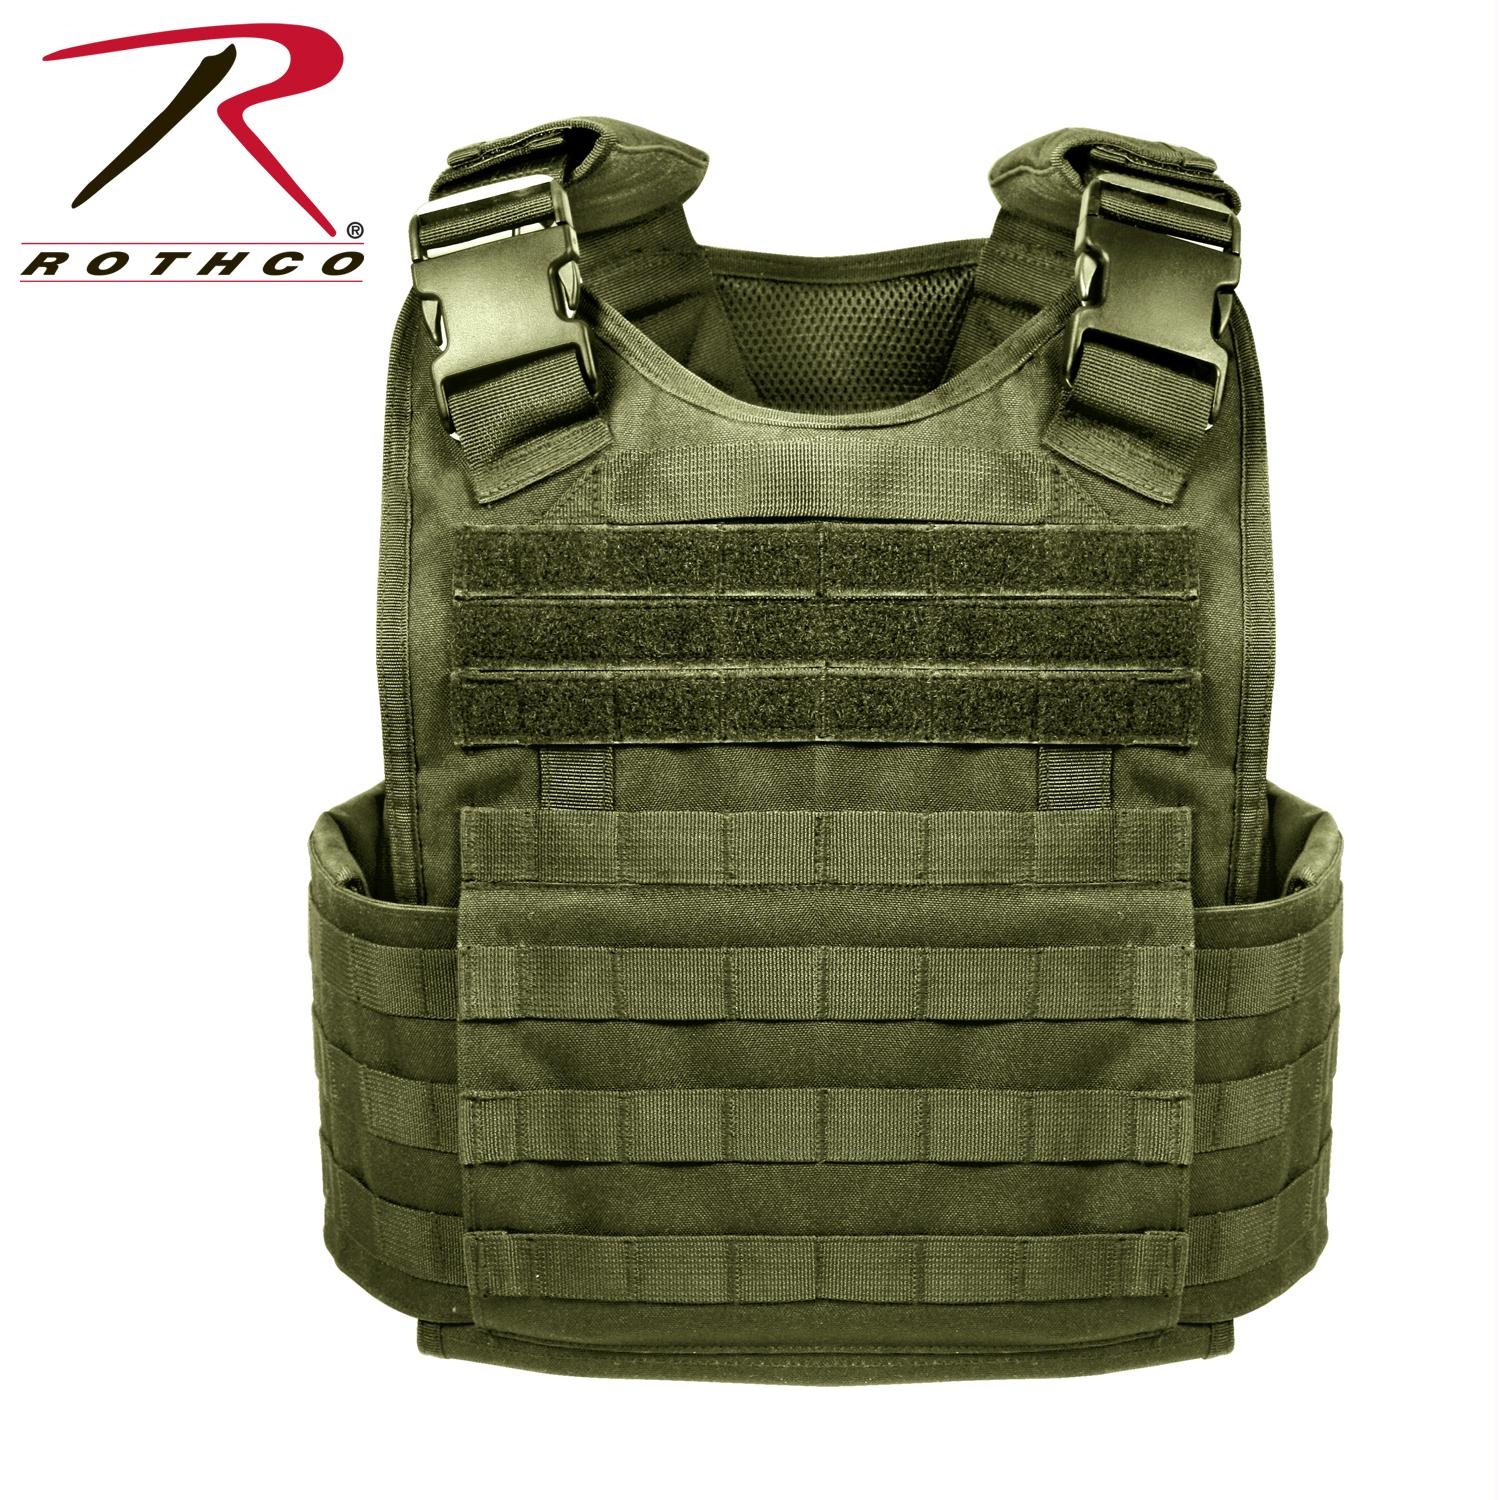 Rothco MOLLE Plate Carrier Vest - Olive Drab / Regular